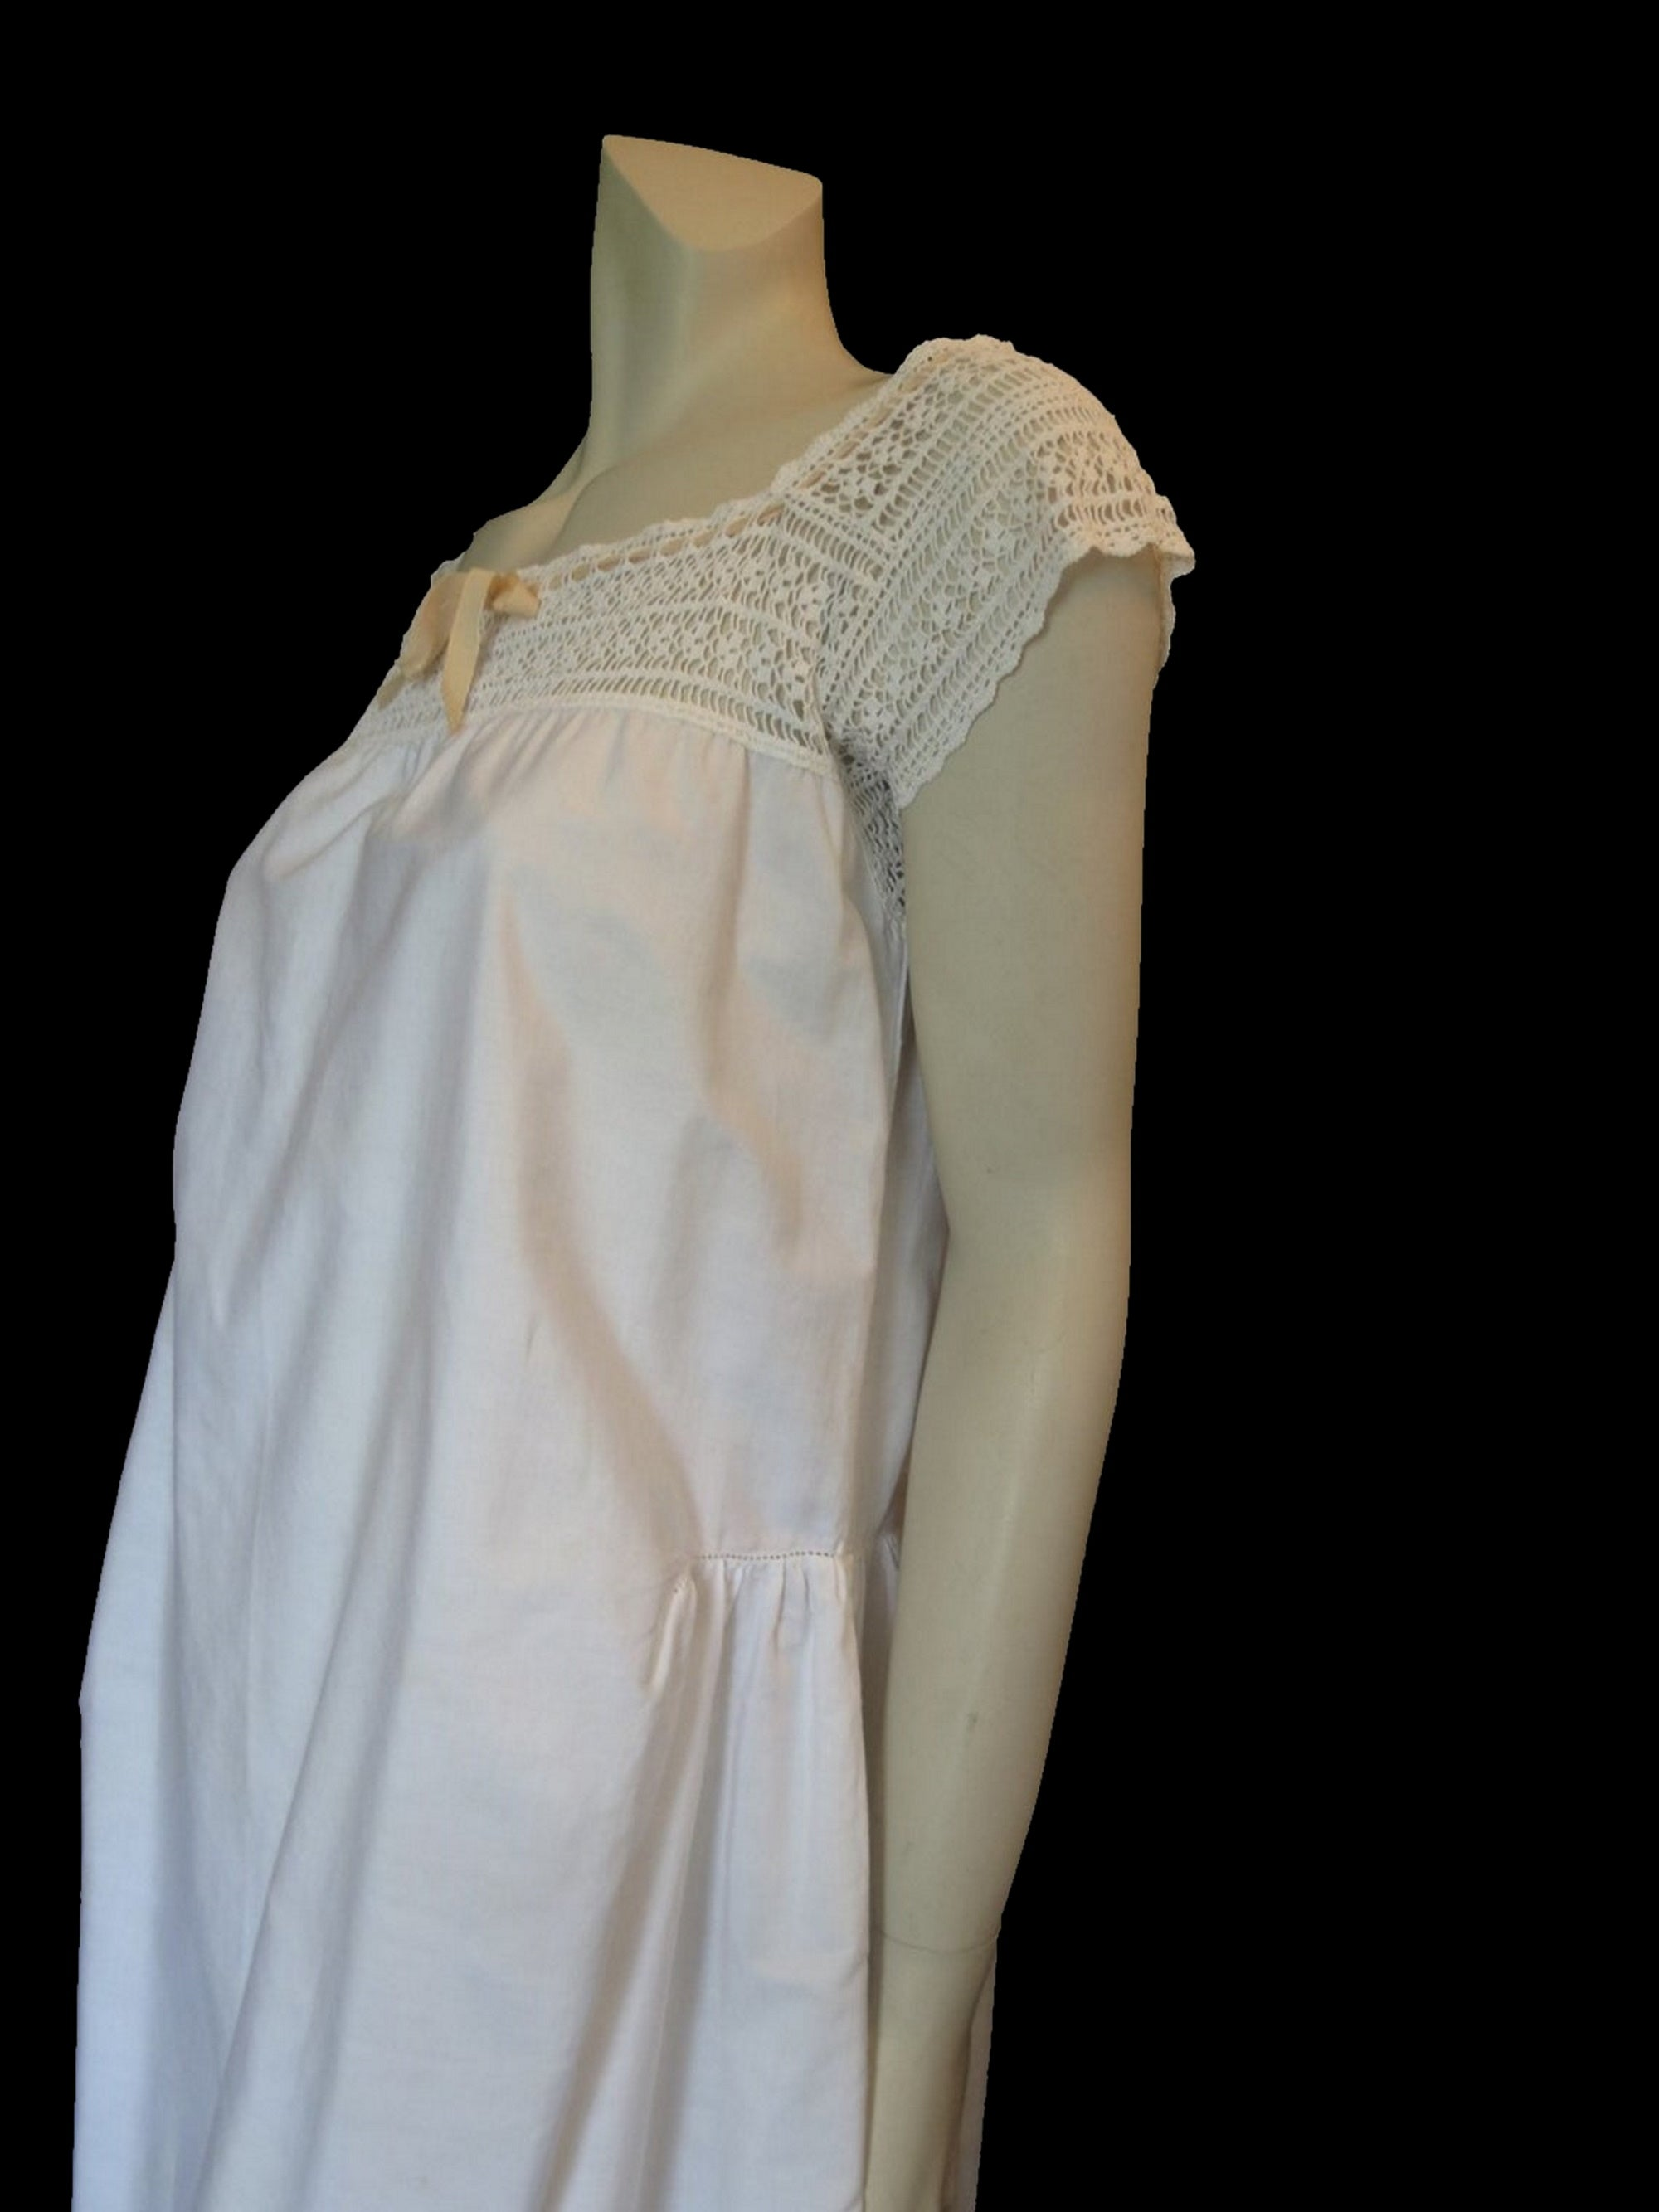 1920s vintage cotton petticoat dress with crocheted yoke